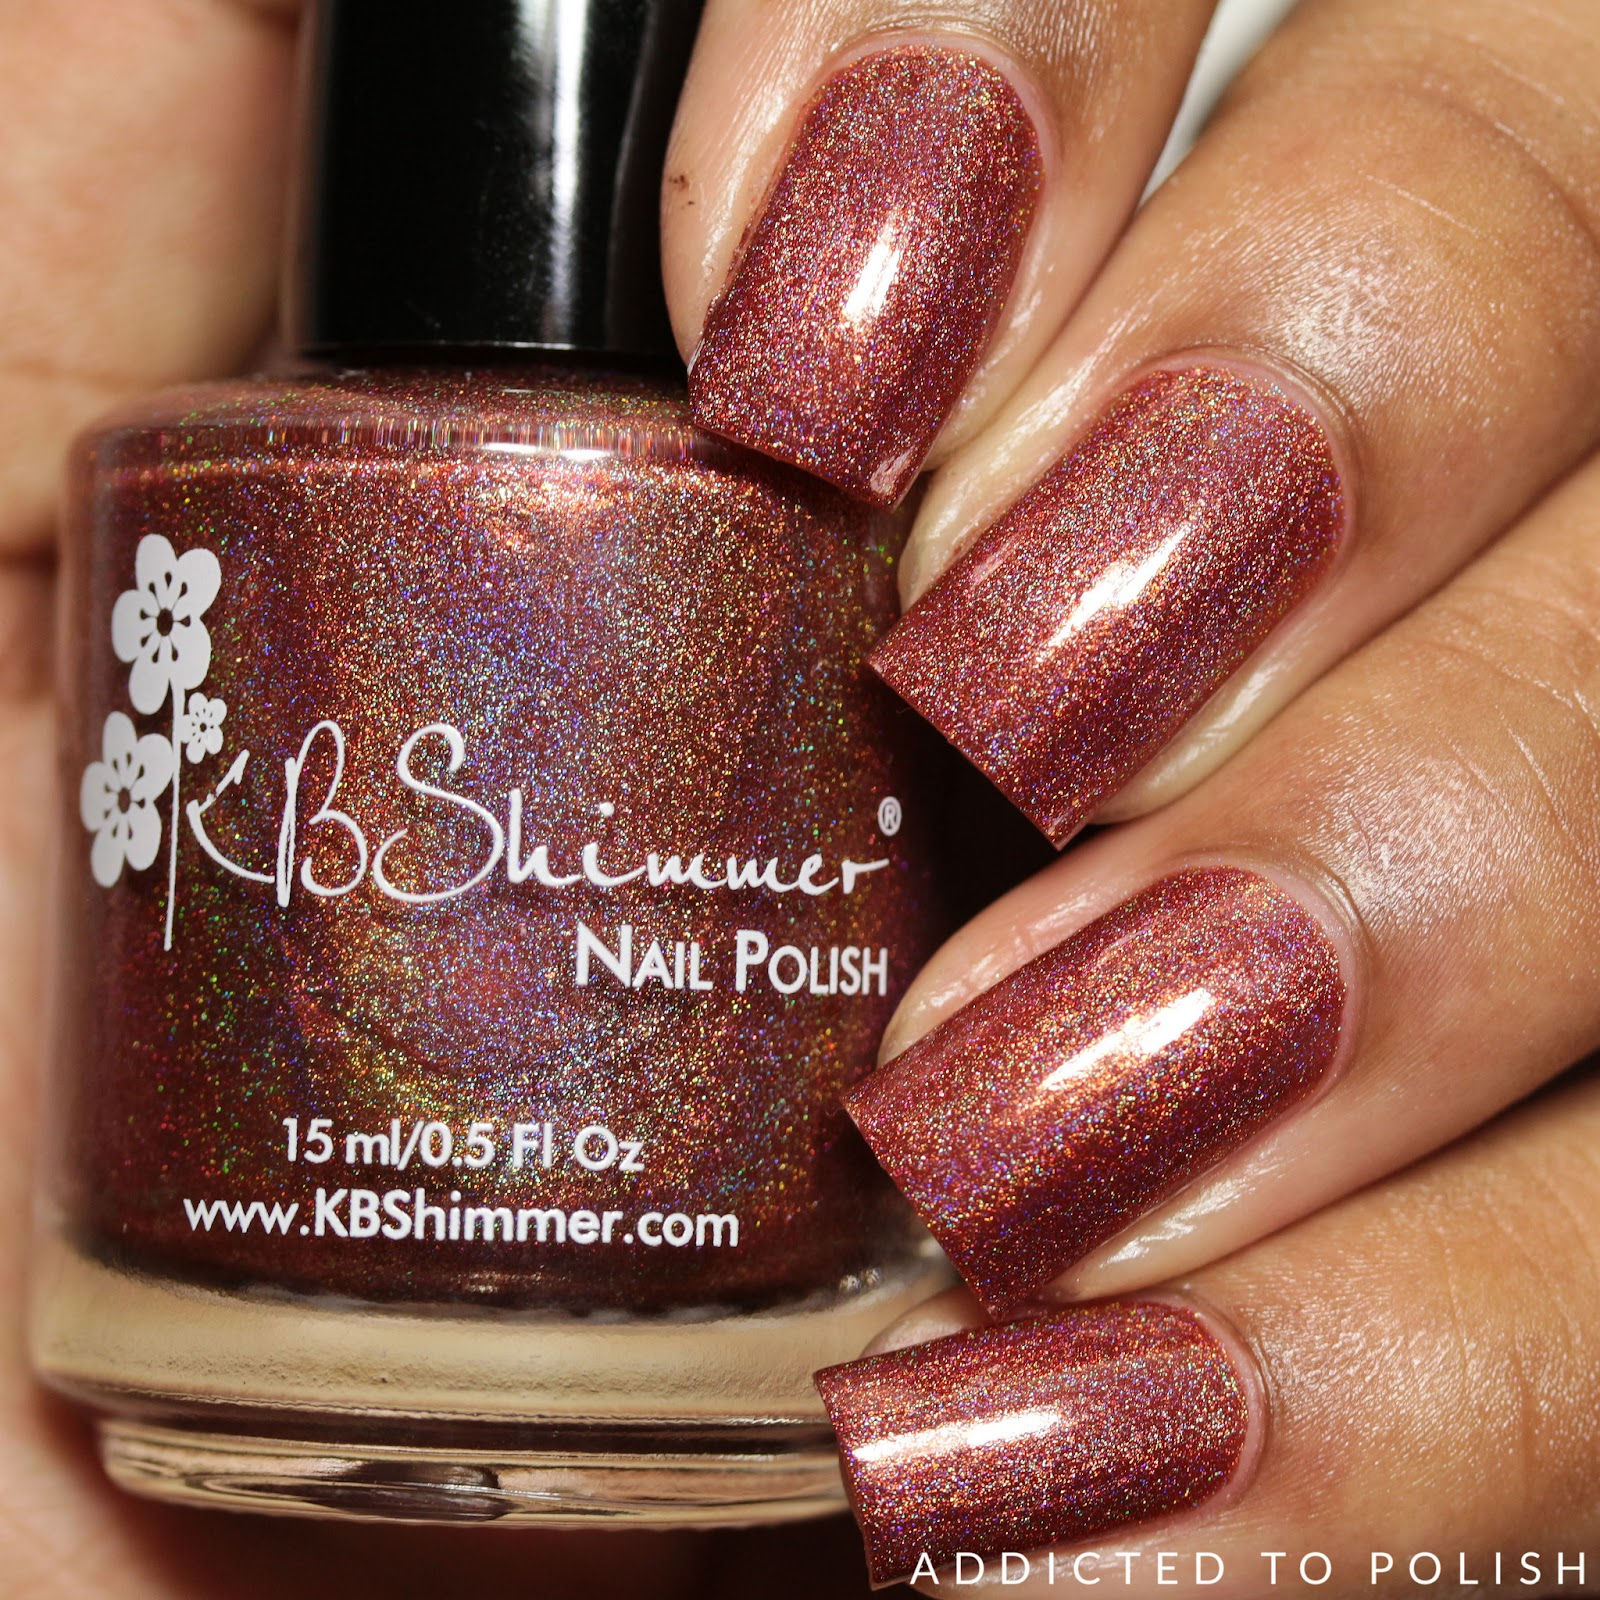 KBShimmer I Never Wood Have Guessed